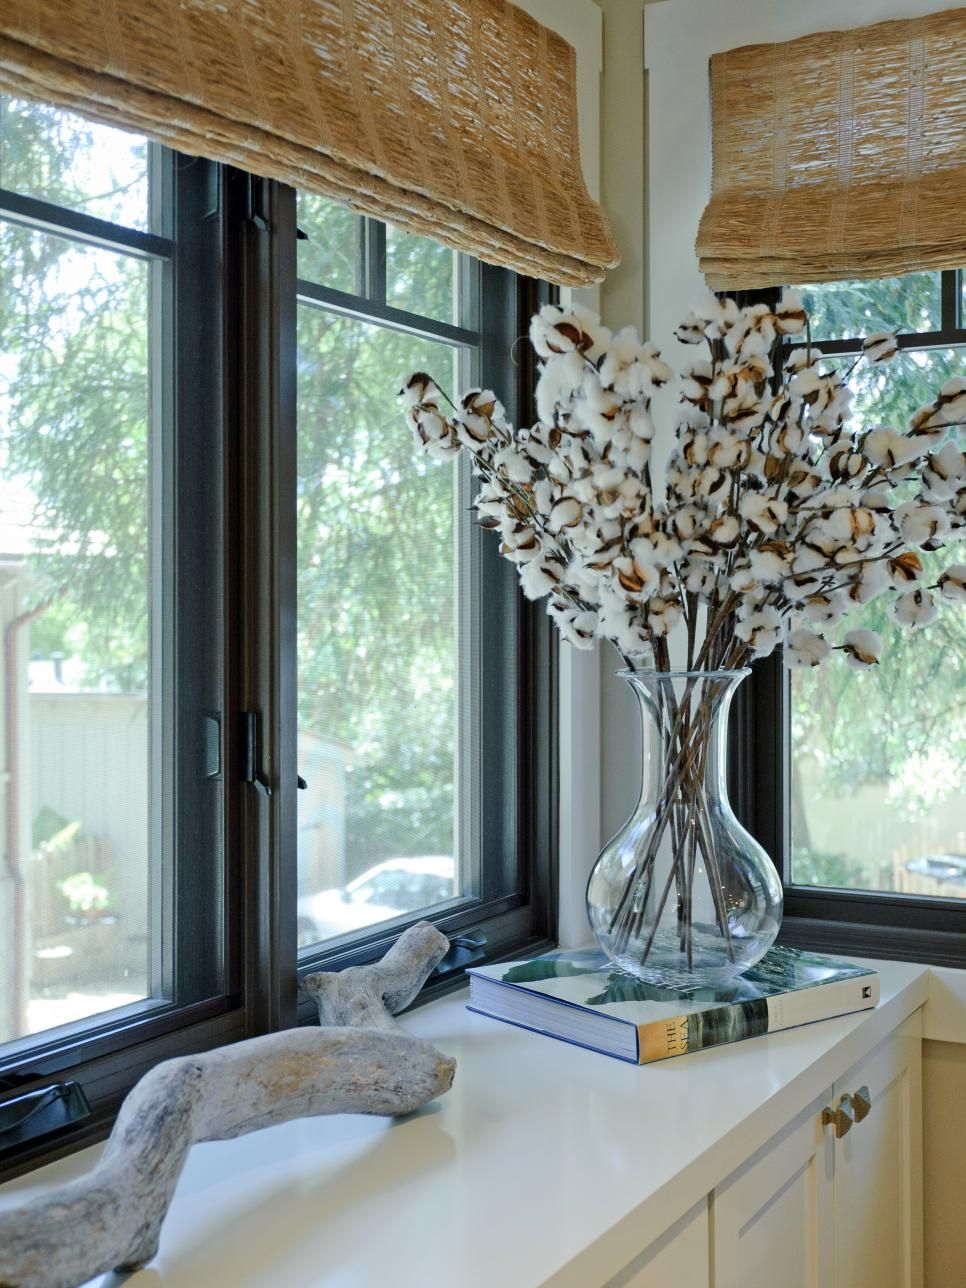 One Of The Most Por Window Treatments At Manufacturer Smith Le Is Natural Woven